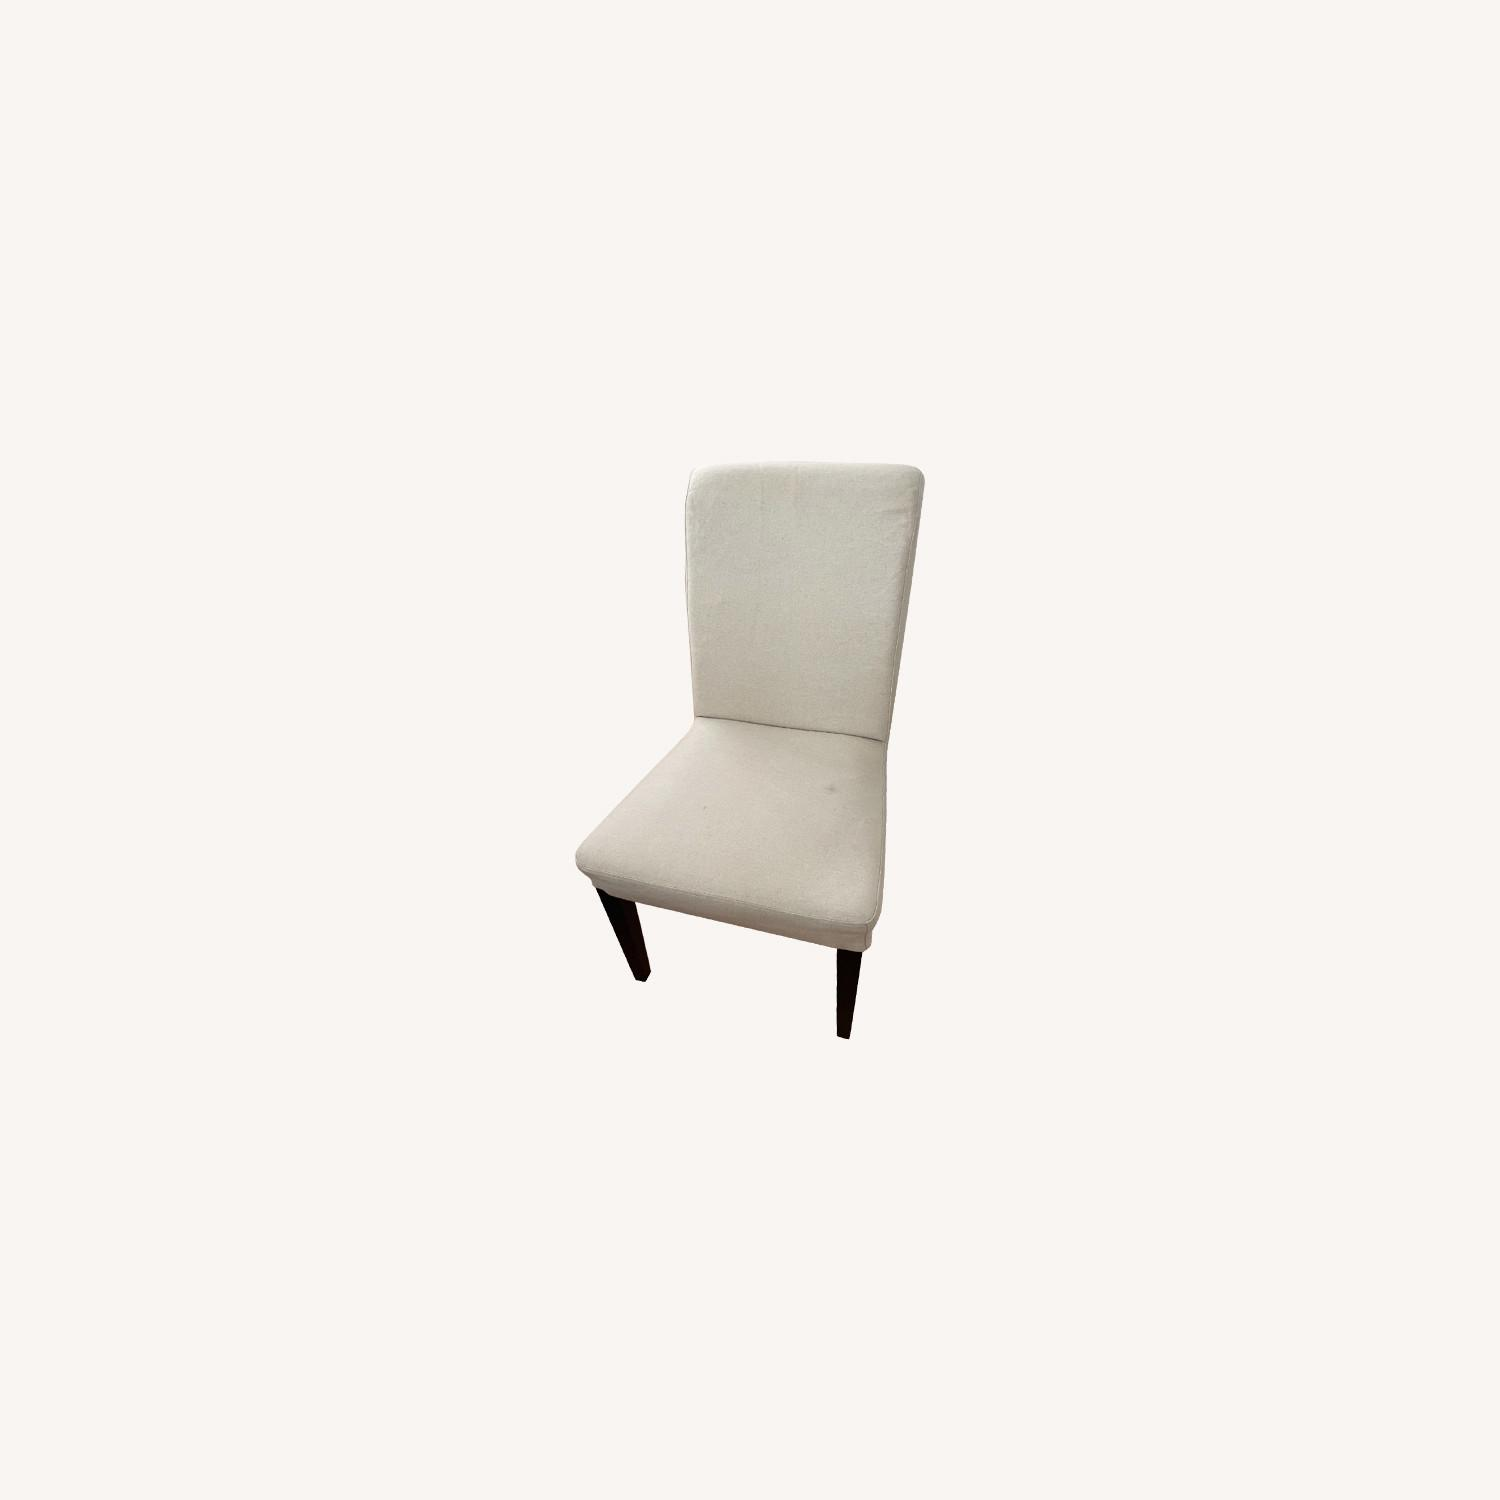 IKEA Set of 4 Cream Colored Dining Chairs - image-0